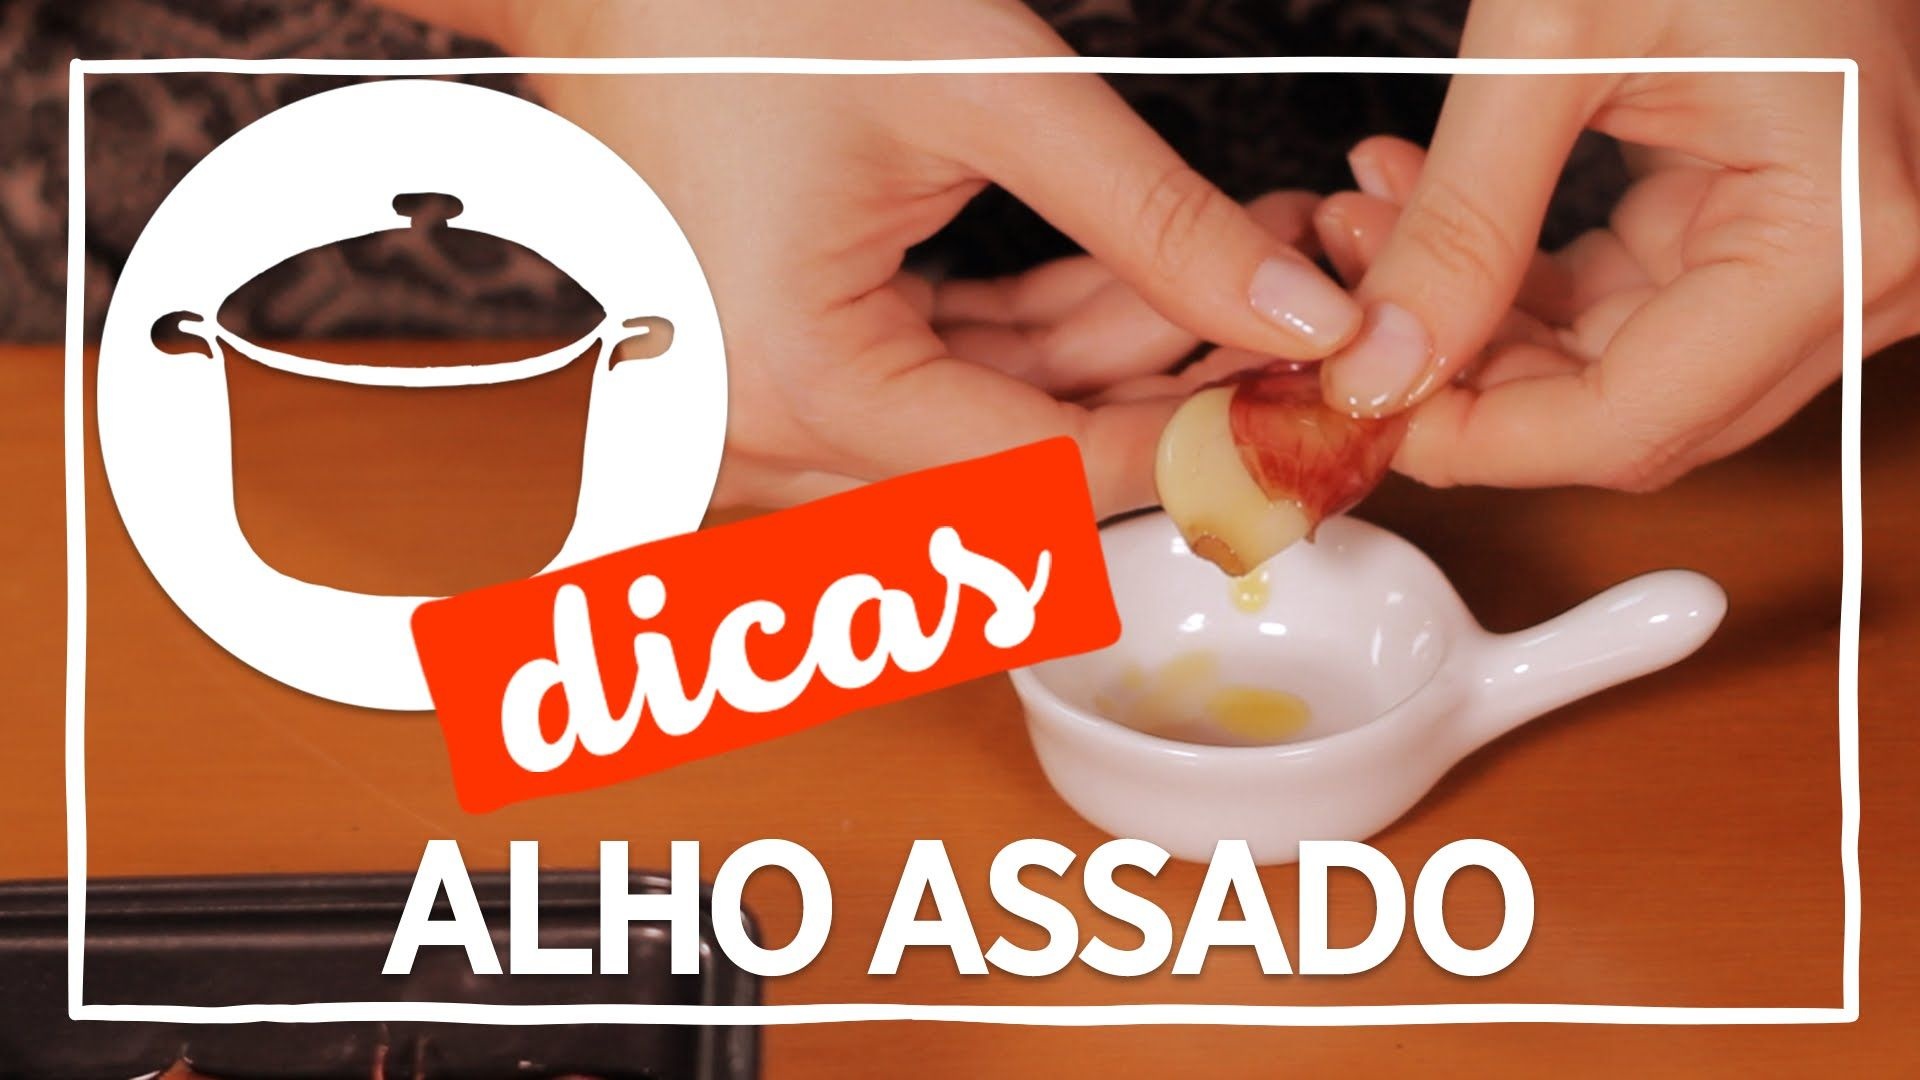 Dica de como assar alho - YouTube